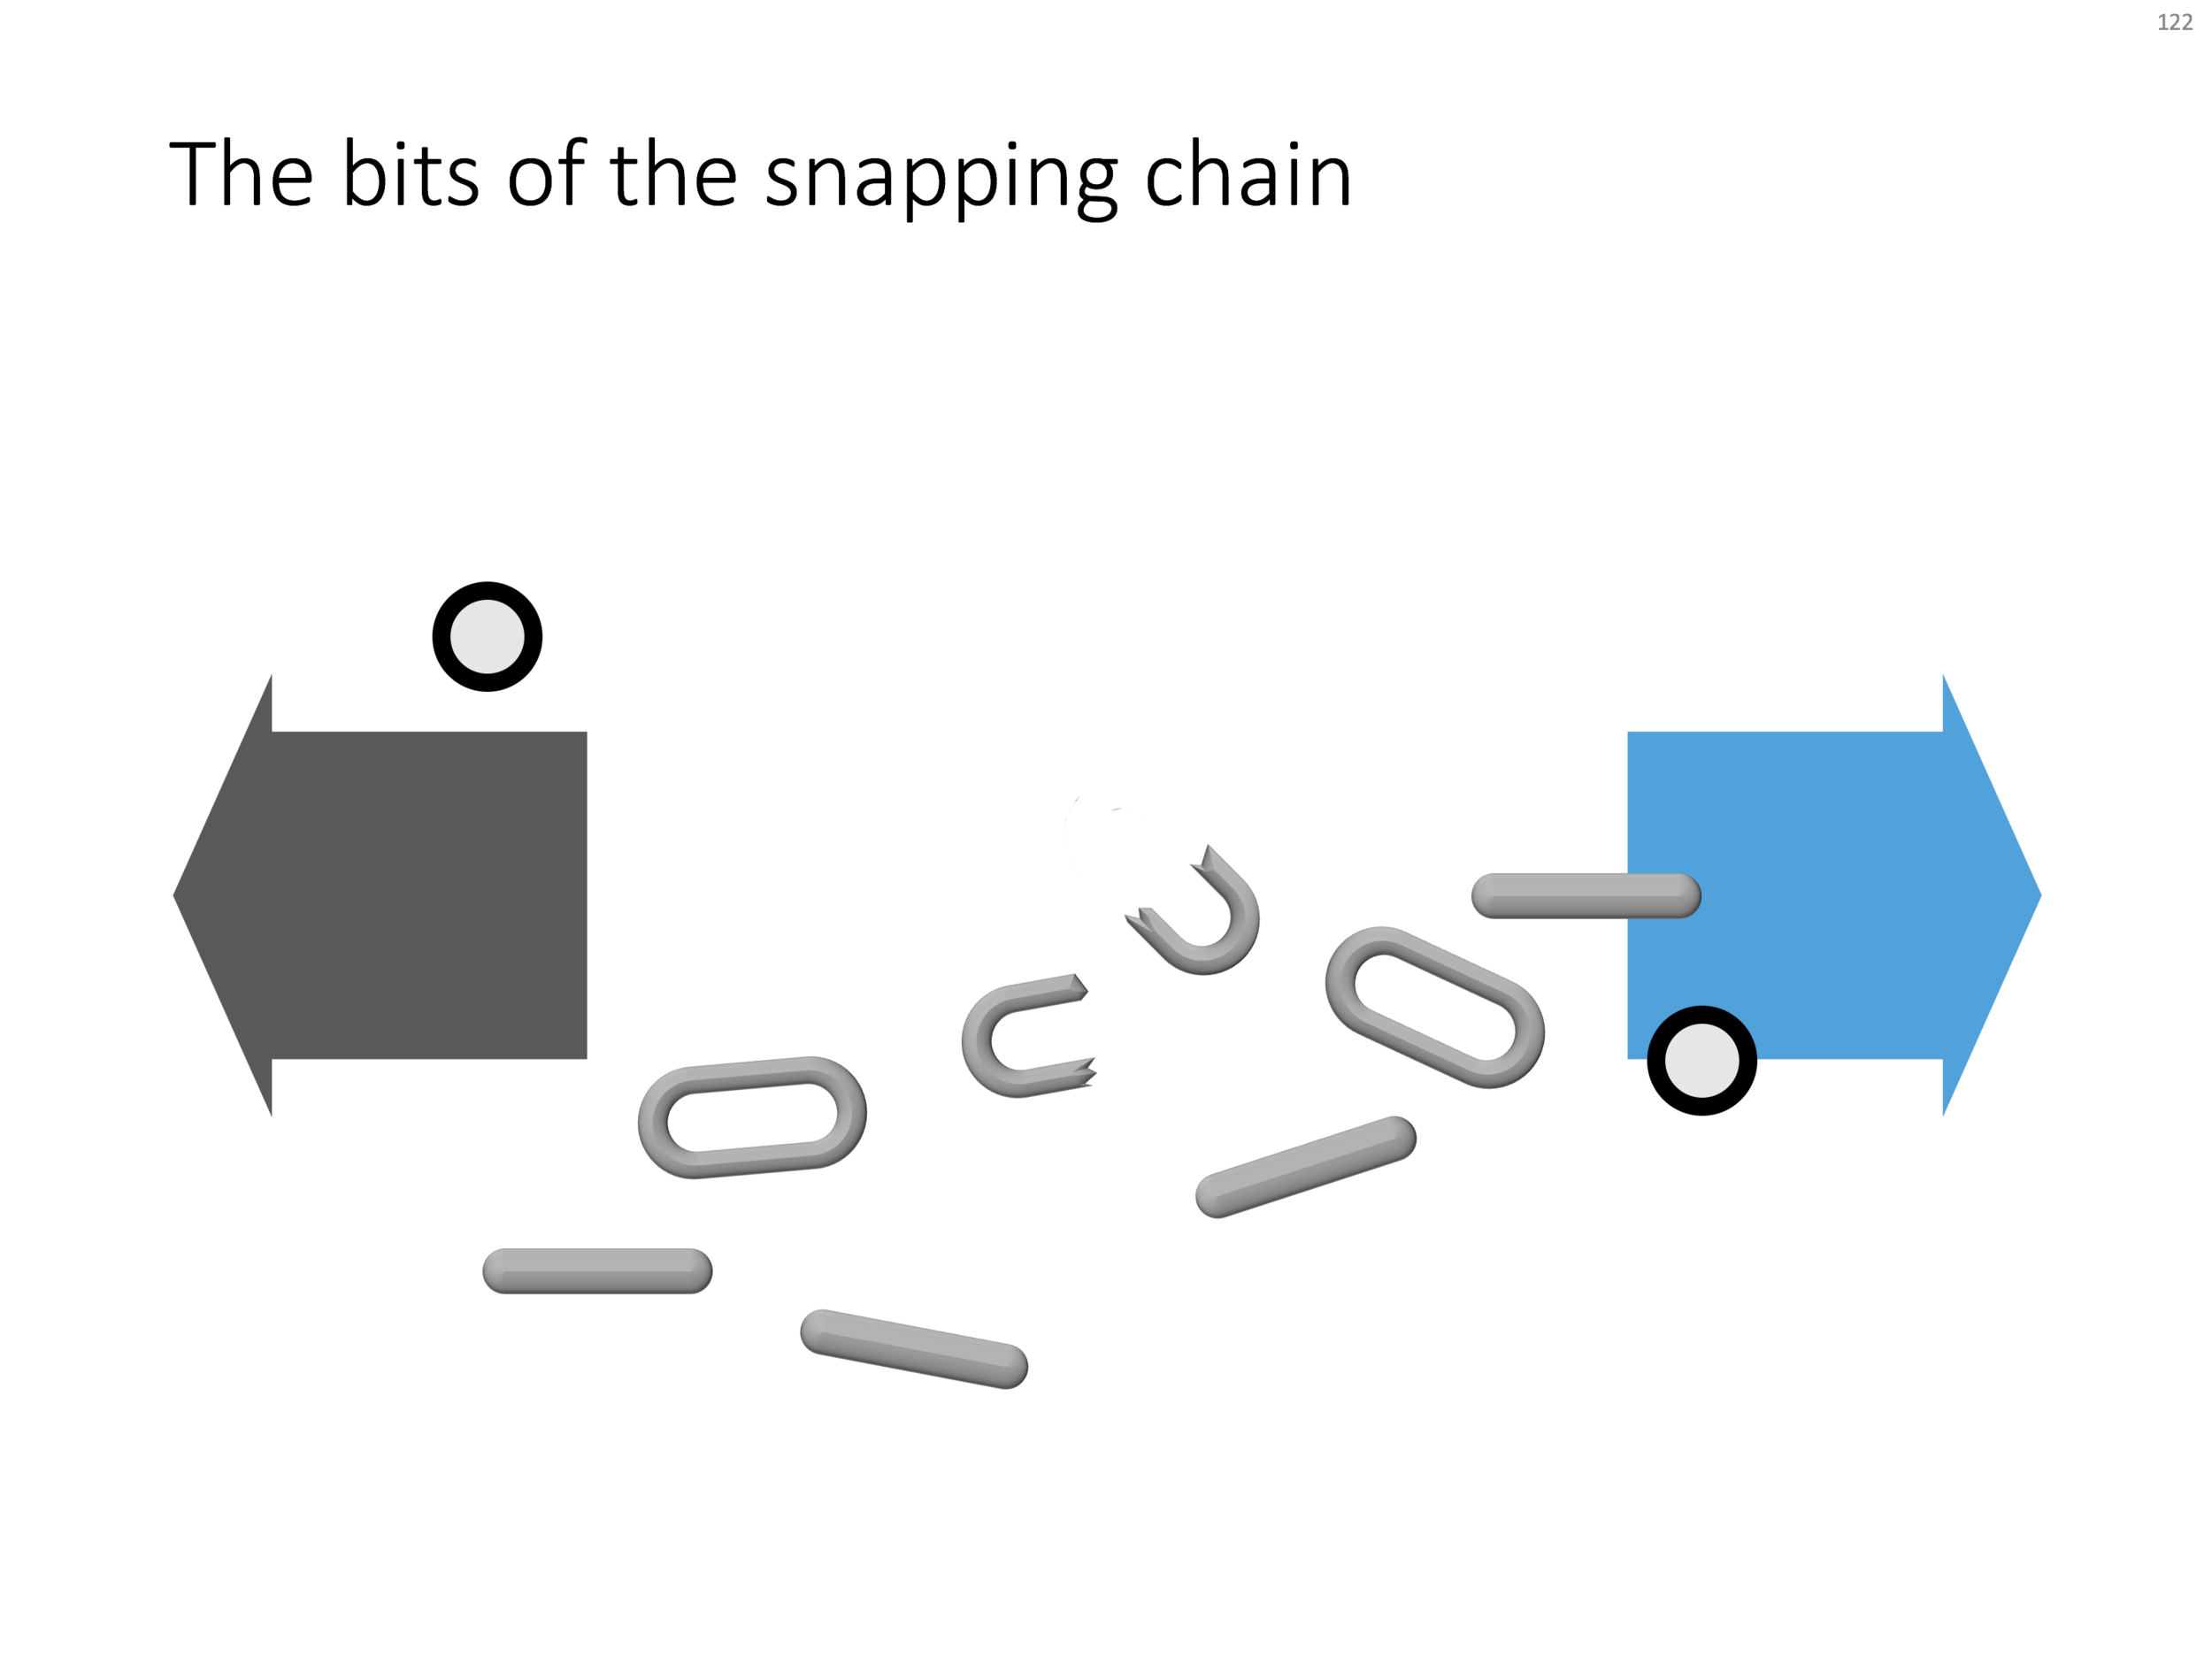 Snapping chain